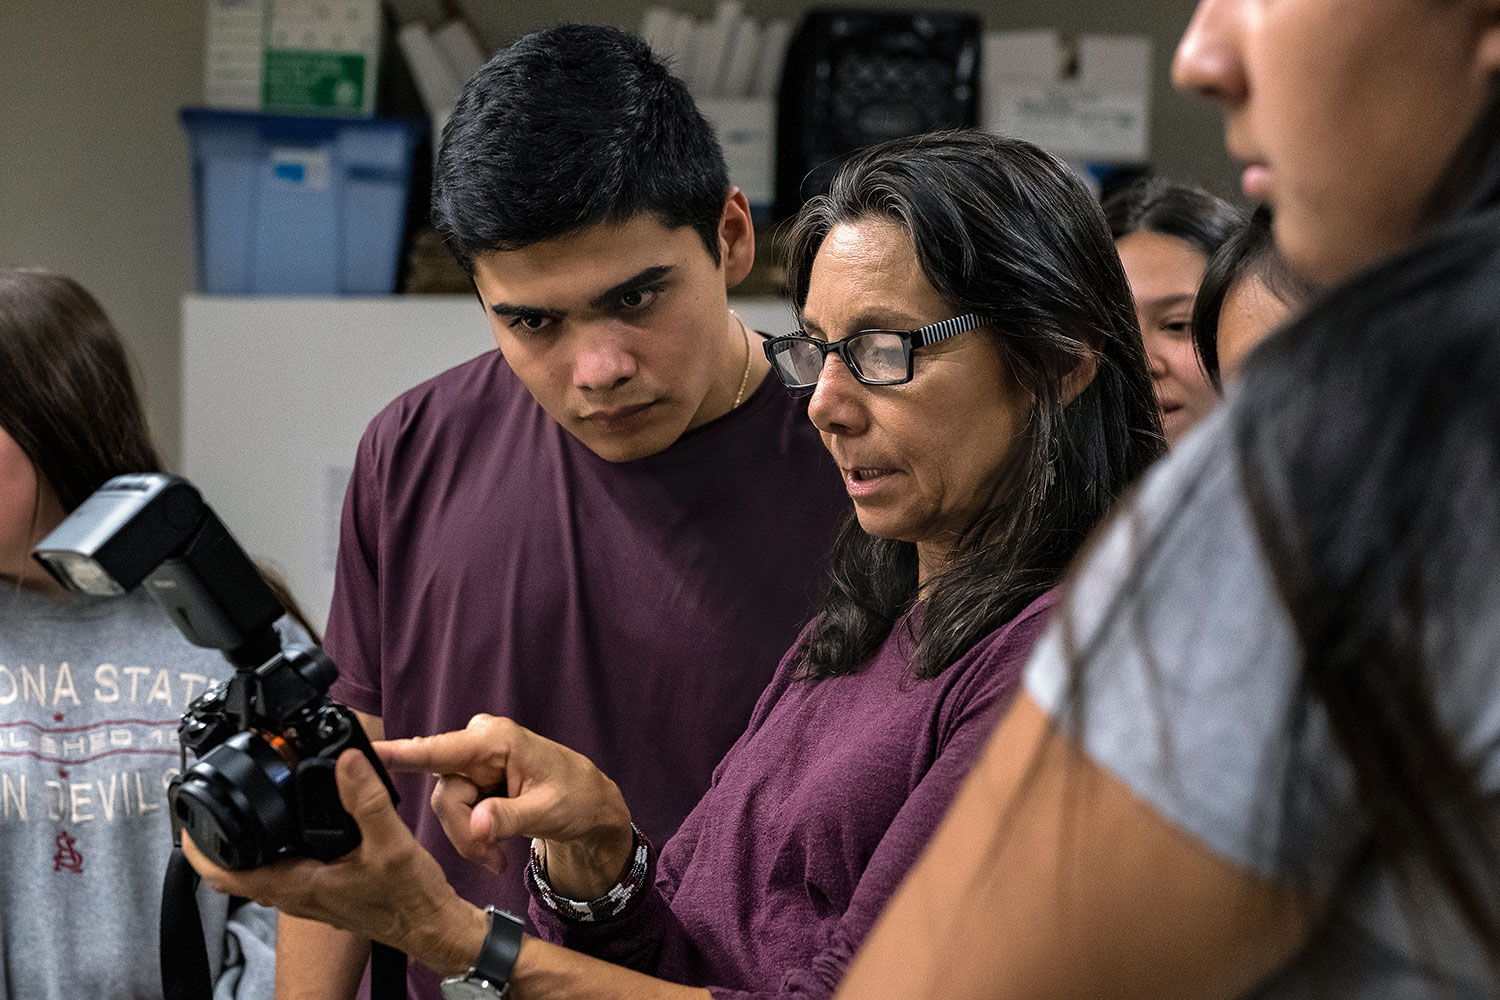 professor teaching student about photography and cameras